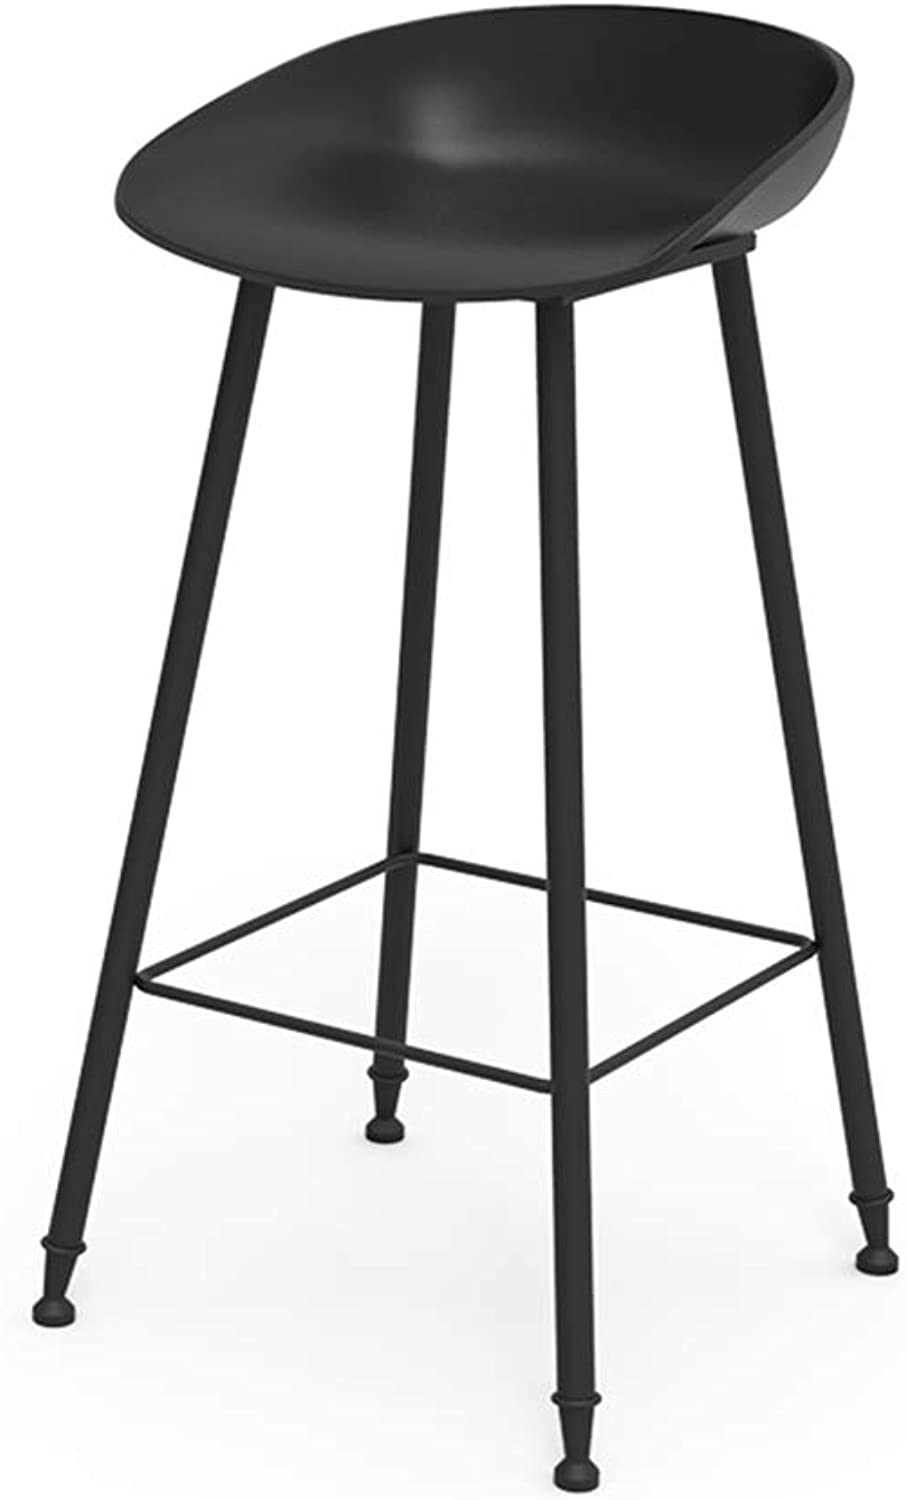 Creative PP Bar Chair,Nordic Wrought Iron Barstools,Easy to Clean,Strong Bearing Capacity,for Pub Counter Cafe Kitchen Home